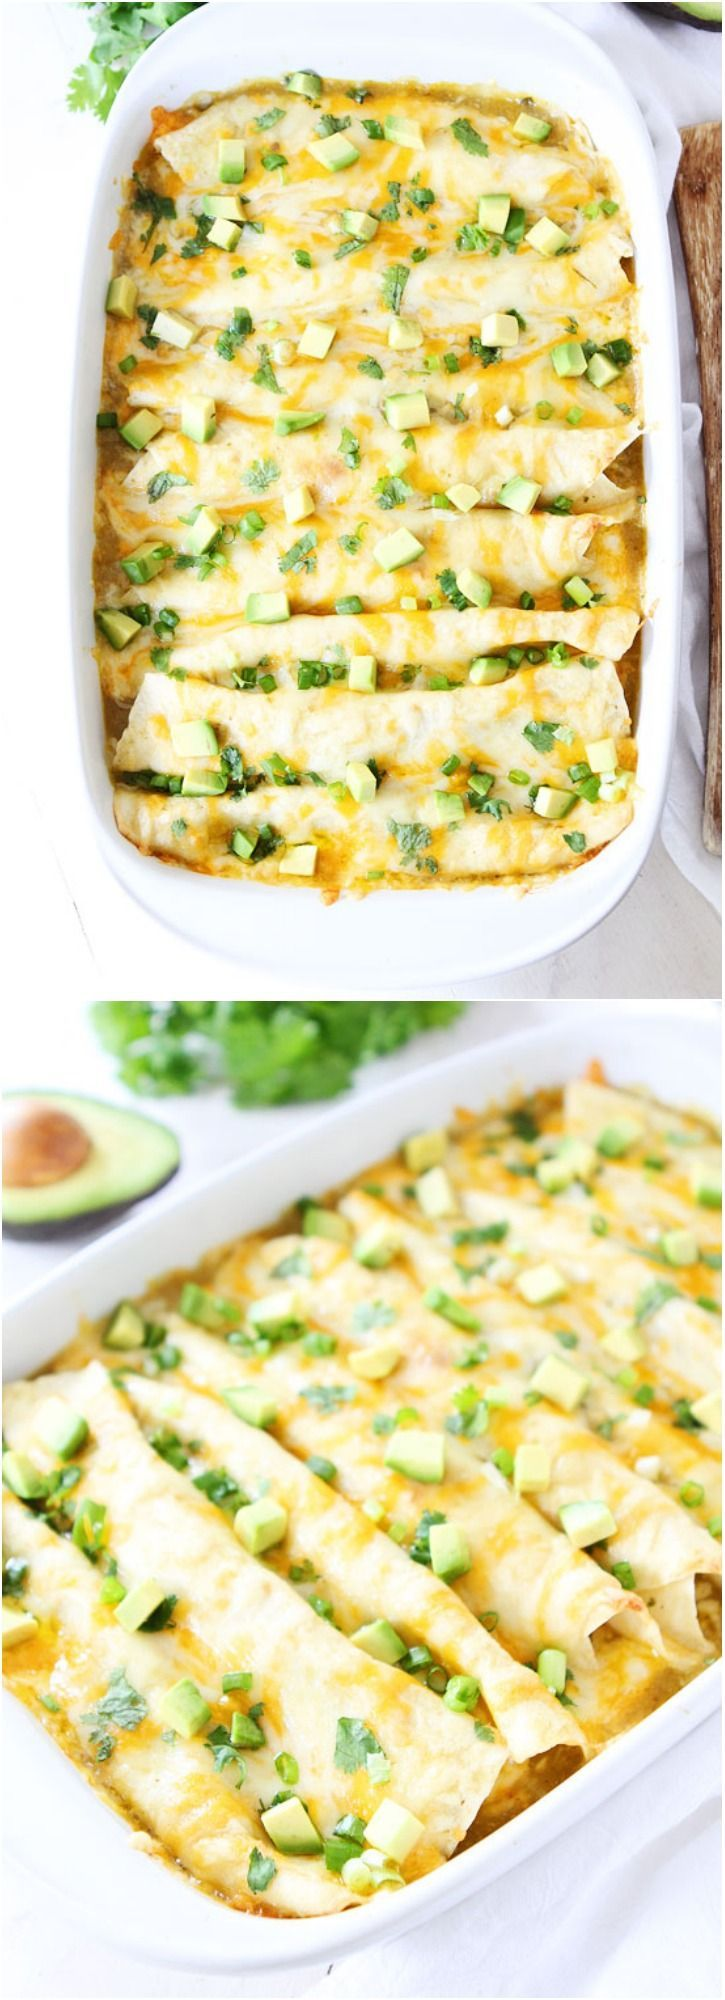 Creamy Spinach and Cheese Green Chile Enchilada Recipe on twopeasandtheirpod.com An easy weeknight meal and they freeze well too! #vegetarian